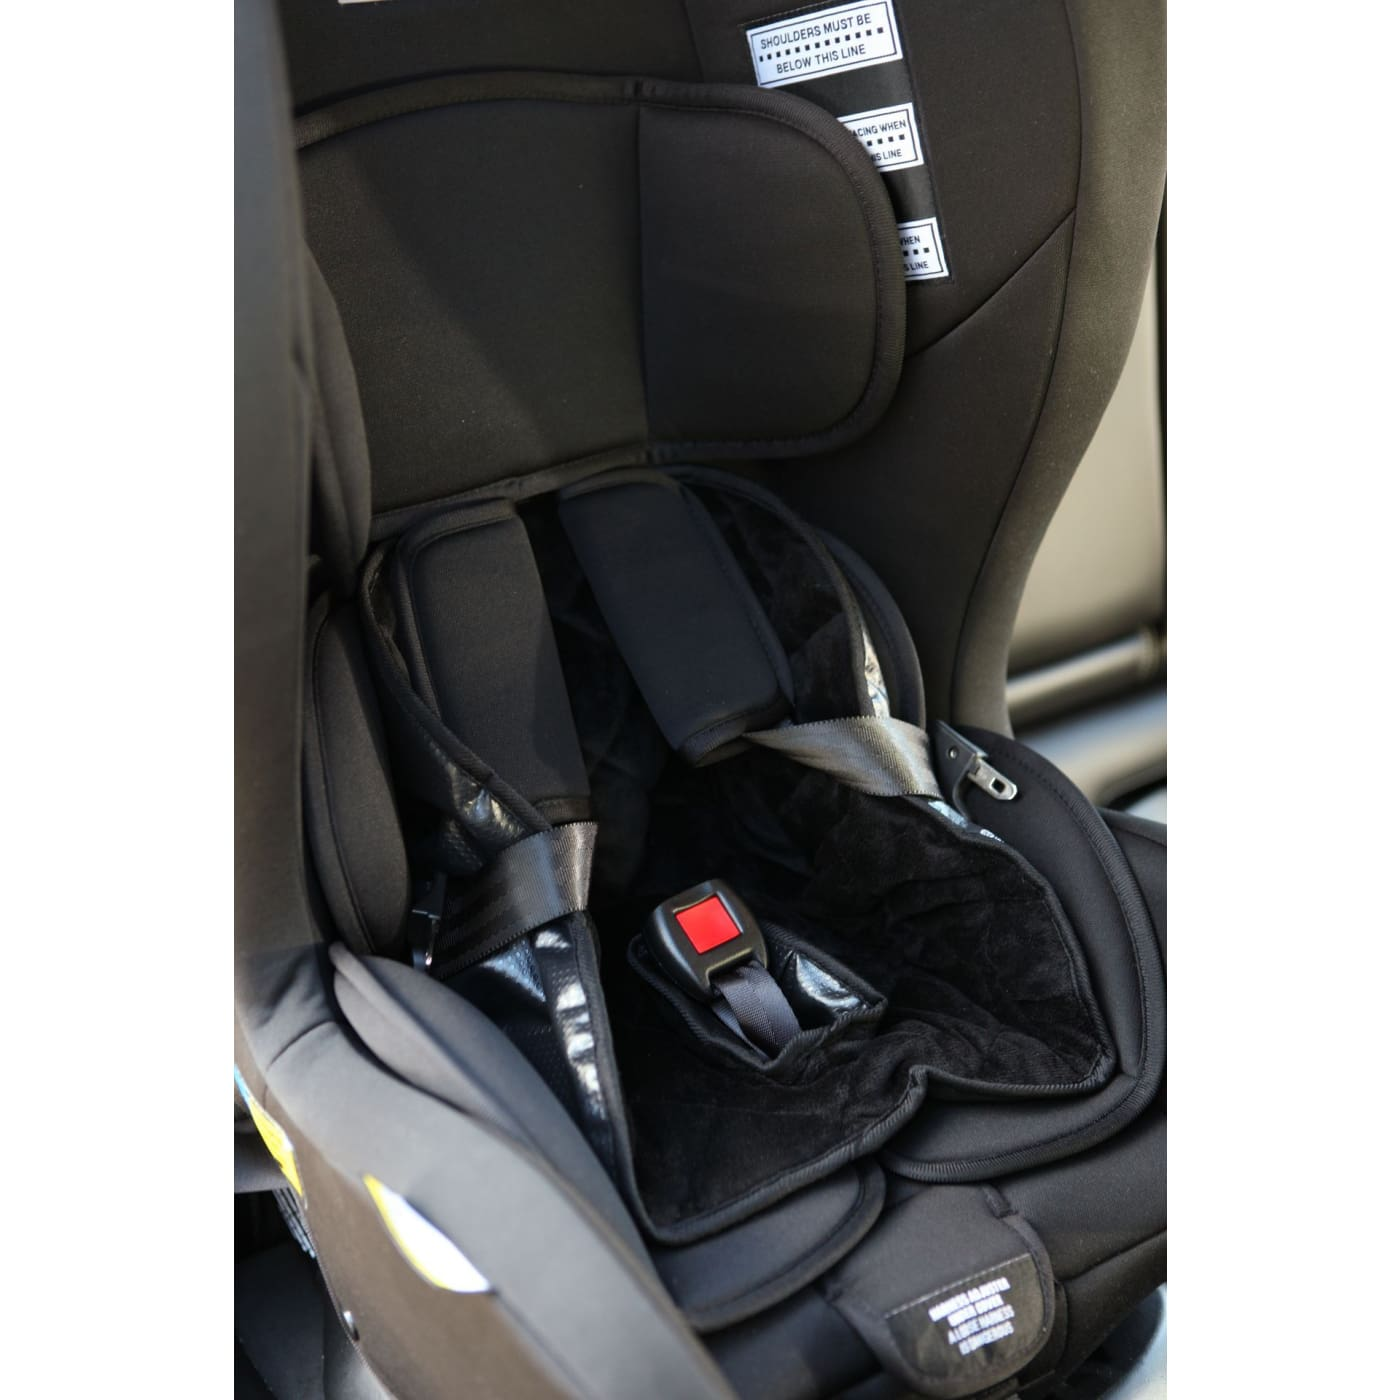 InfaSecure Deluxe Piddle Pad - CAR SEATS - SEAT PROTECTORS/MIRRORS/STORAGE